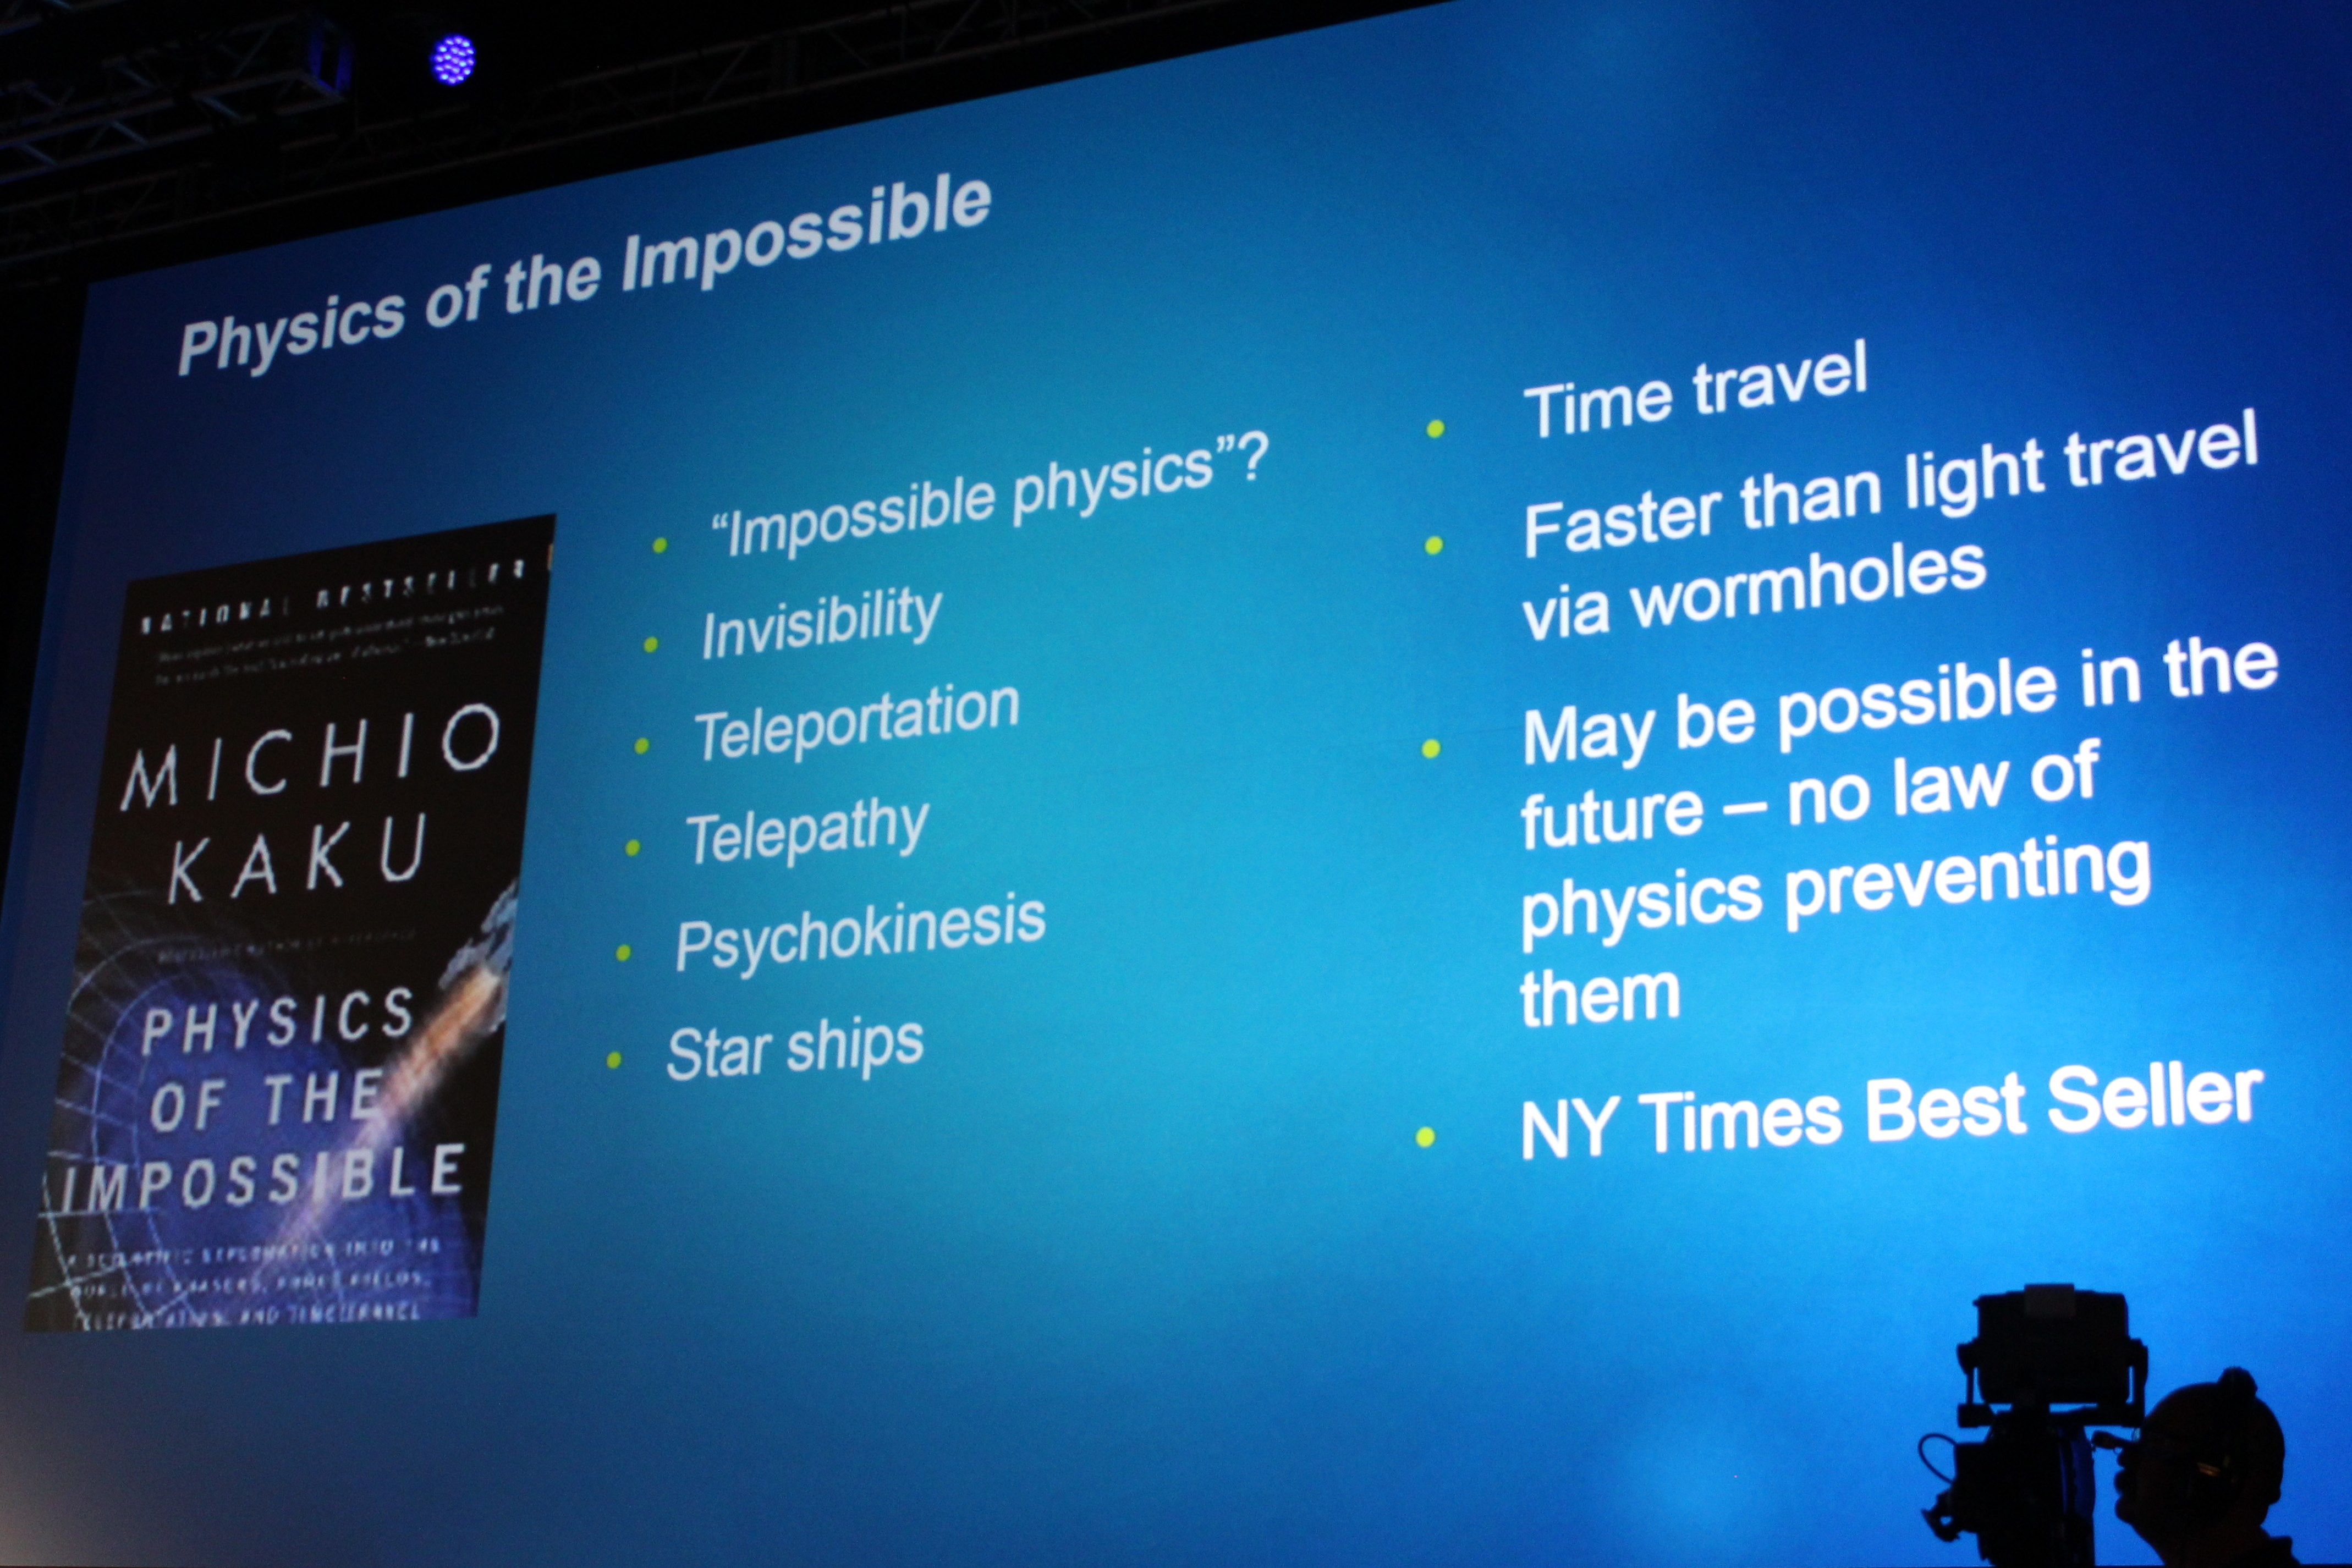 sci fi science physics of the impossible wikipedia